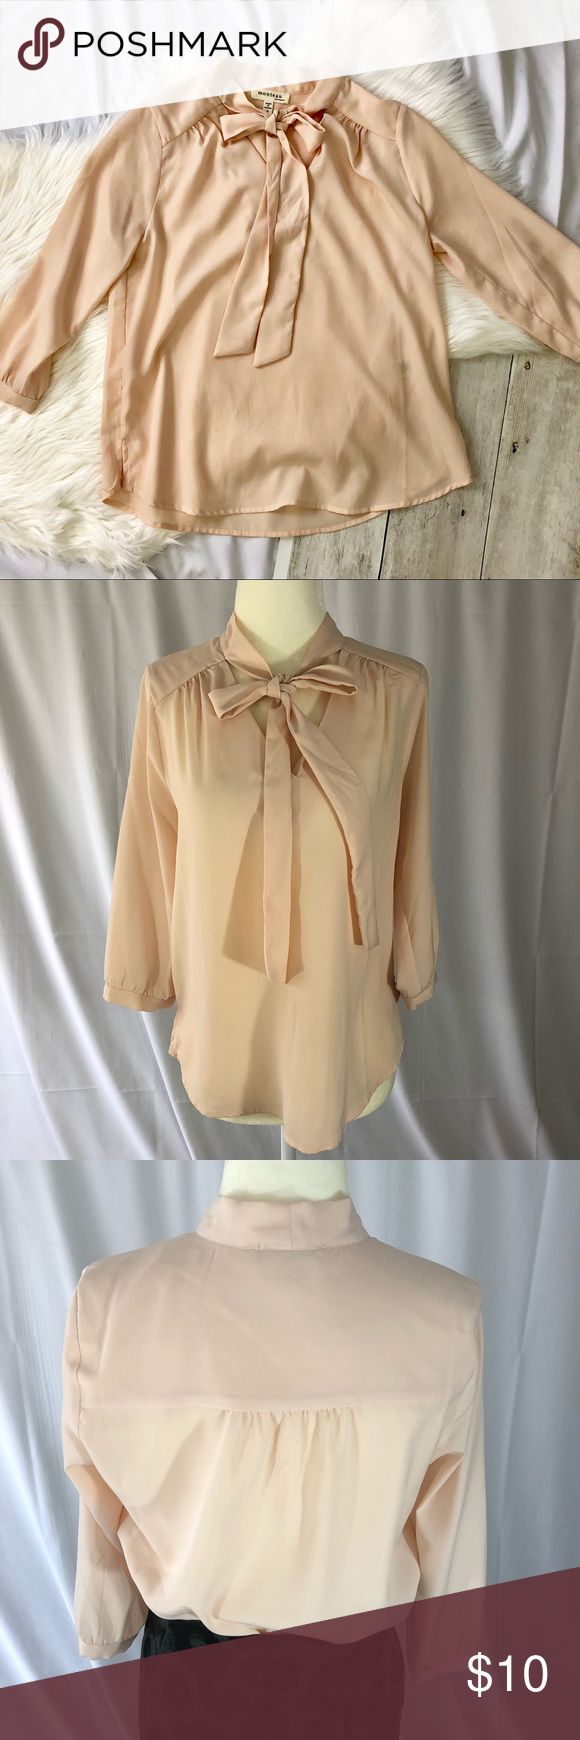 Blush Blouse With Tie Front Detail - Size Small Blush Blouse. Boutique Brand Monteau. Shirt is V-neck but ties at the neck. Quarter Sleeves. Lightweight Material. Loose Fitting. Great for dressing up or business casual! Monteau Tops Blouses